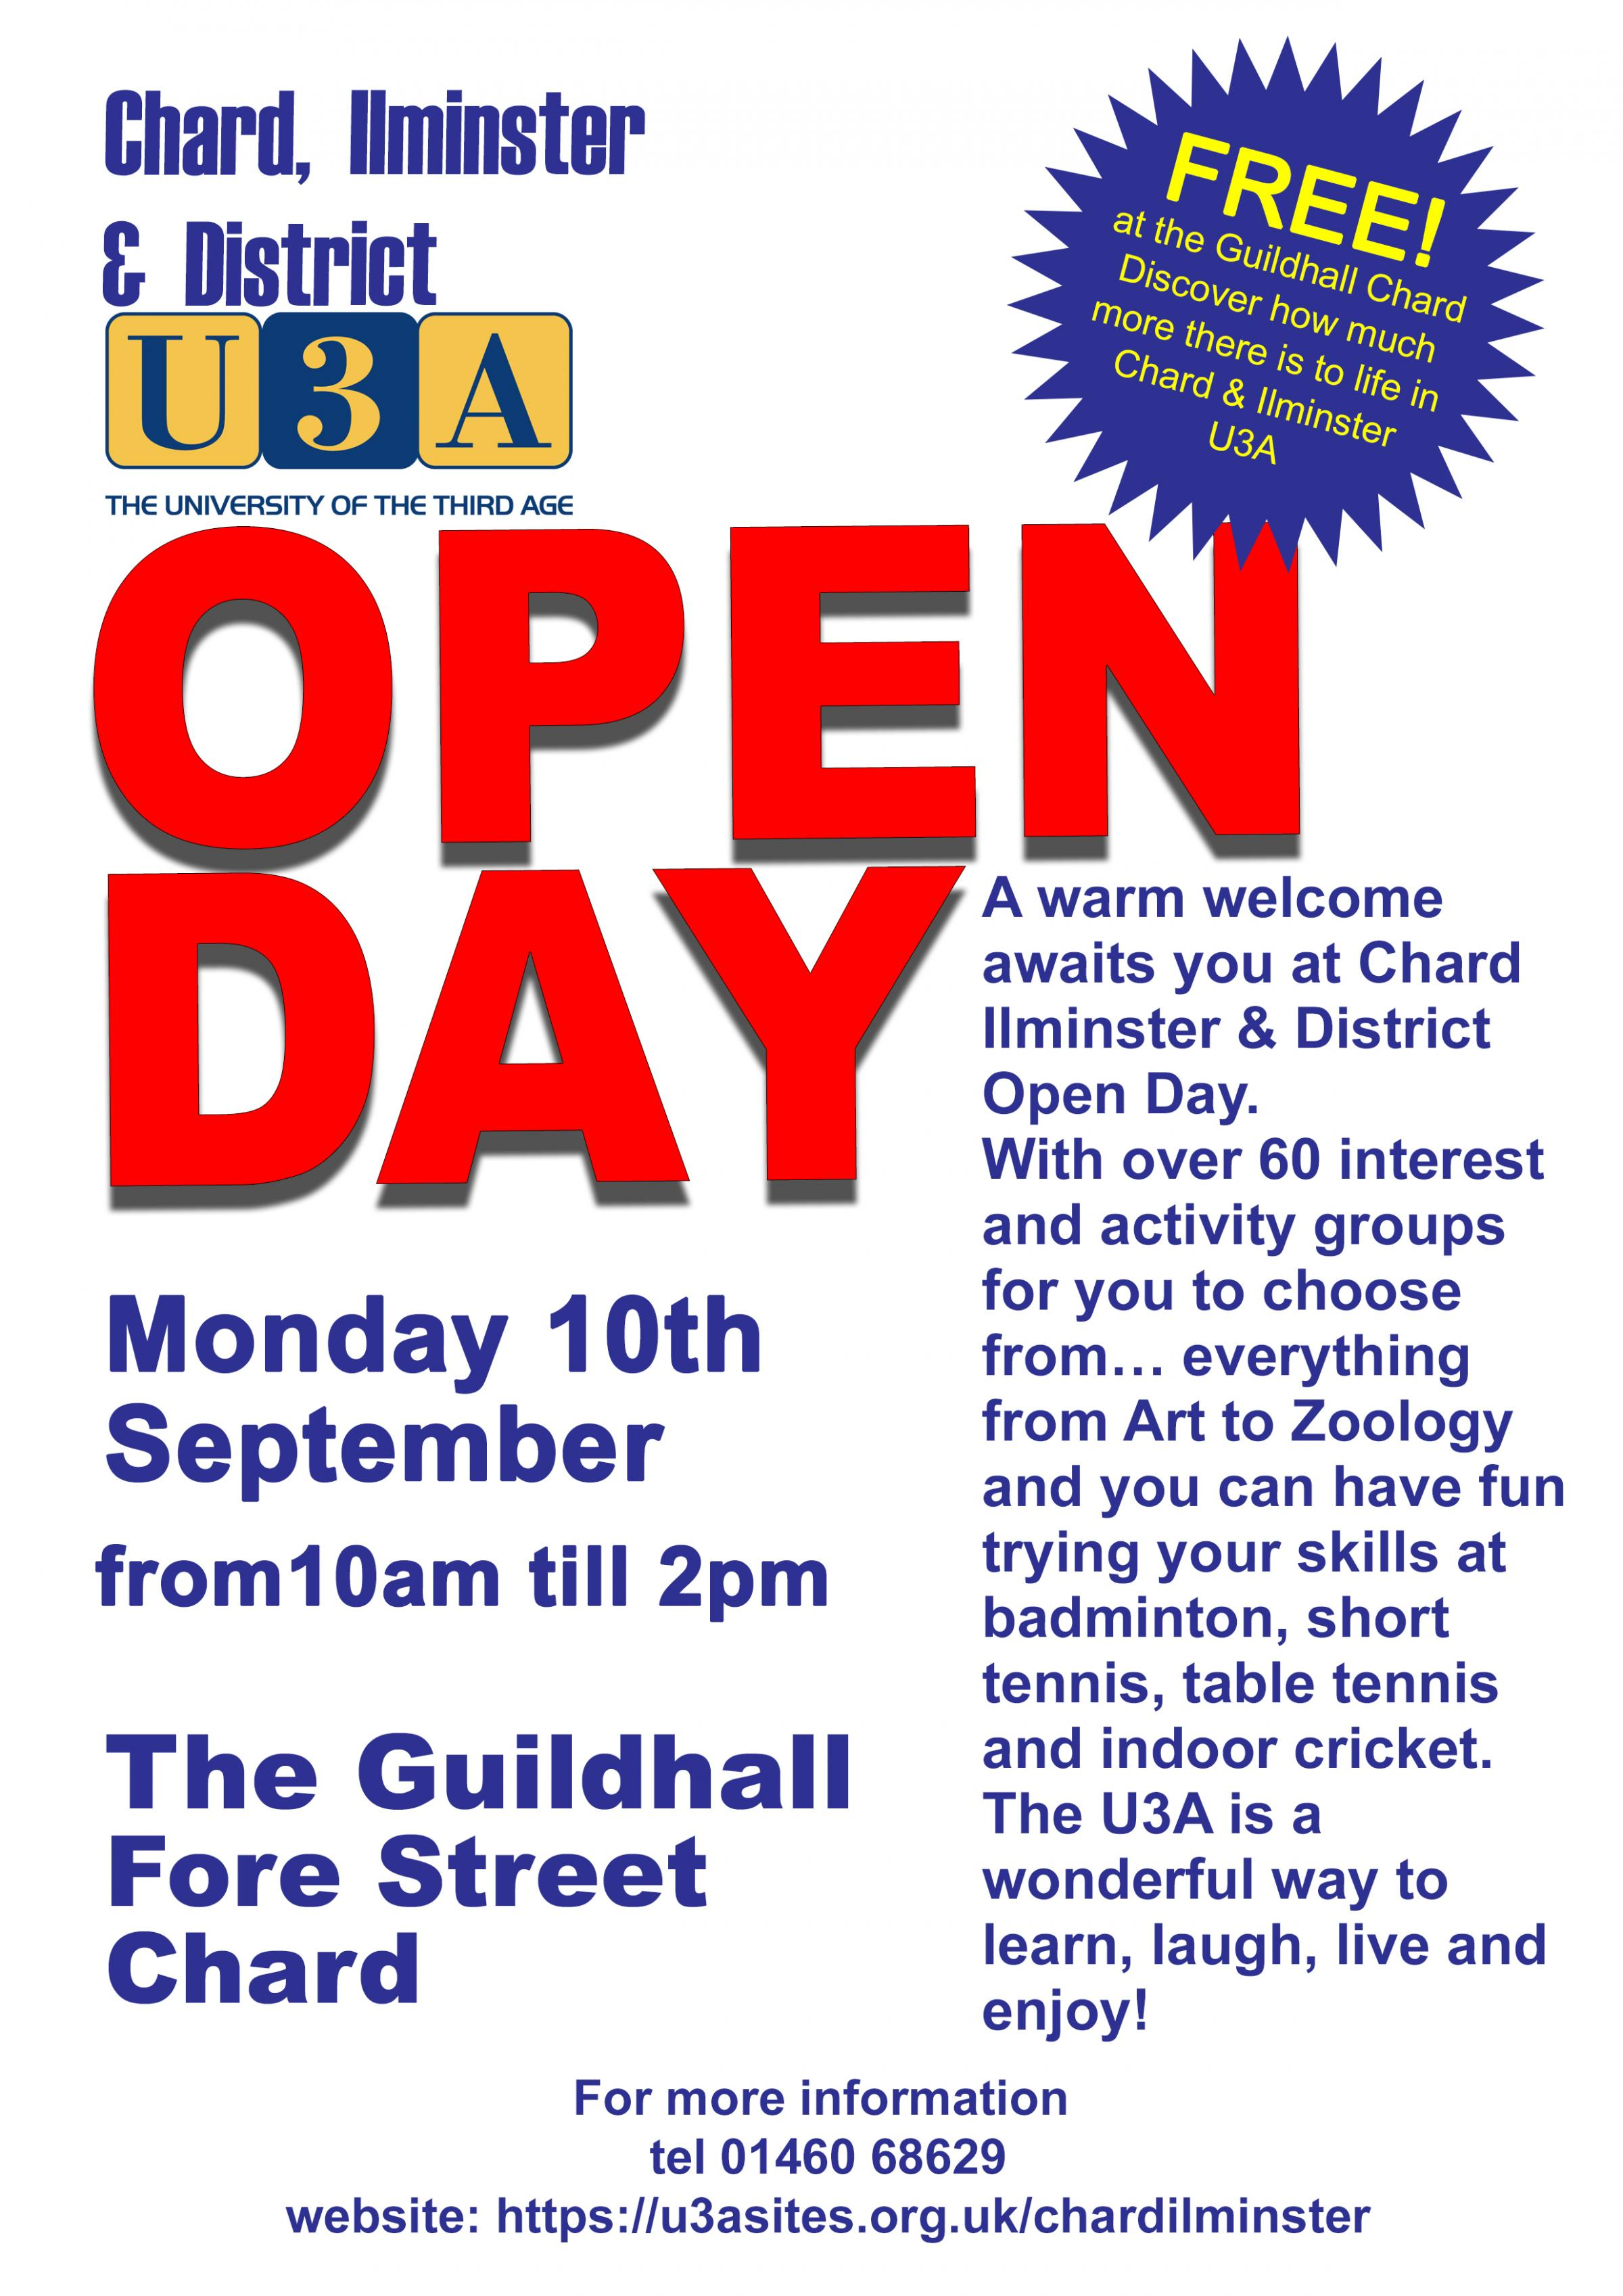 OPEN DAY CHARD & ILMINSTER U3A